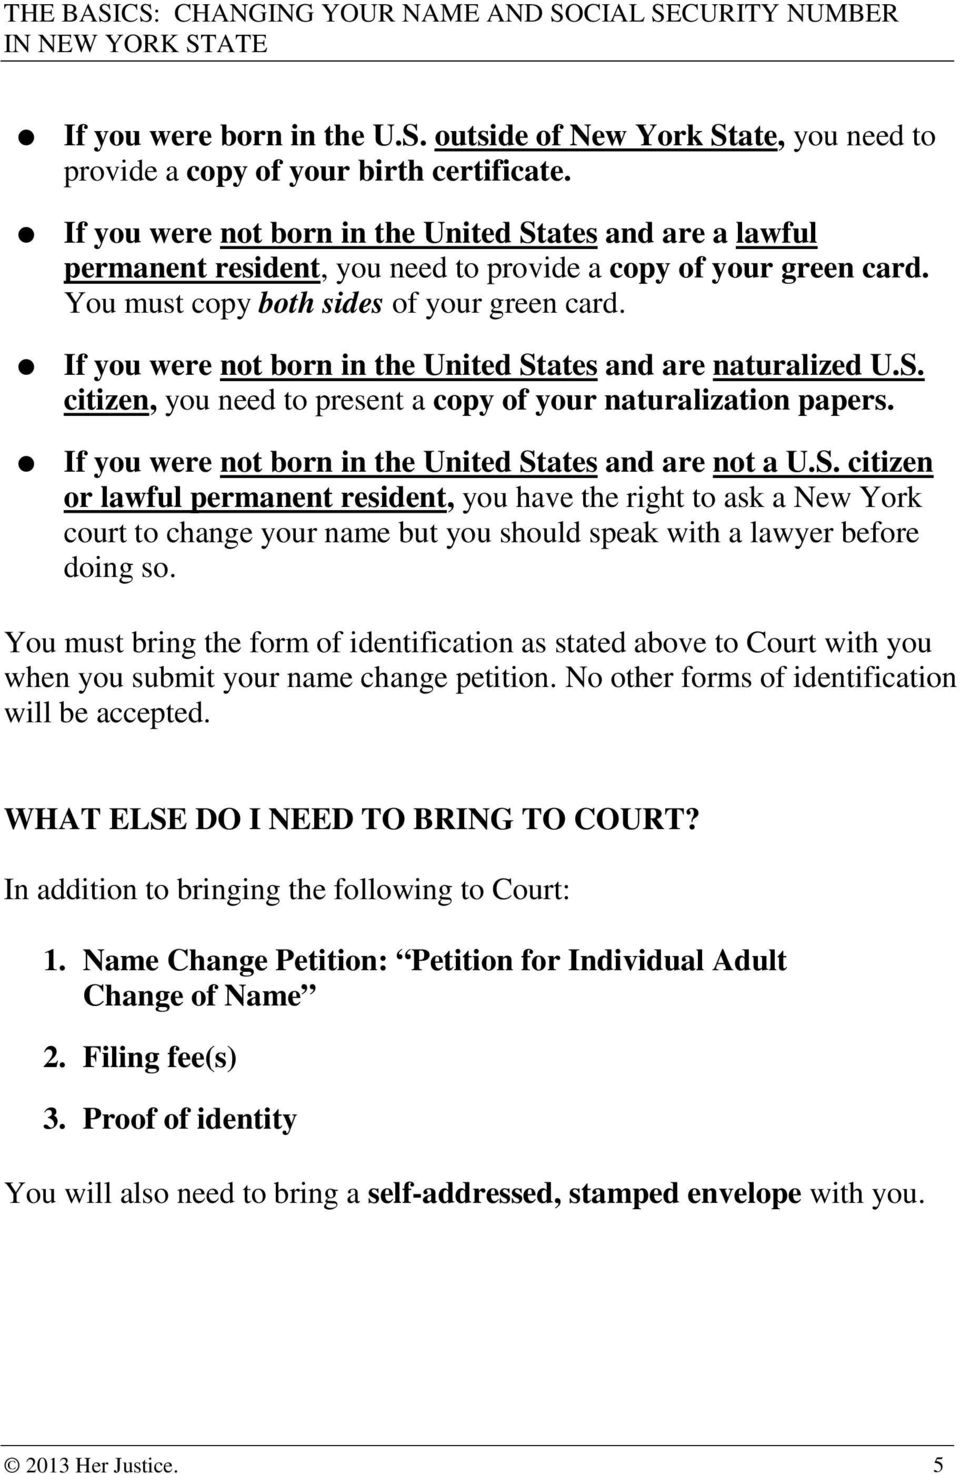 If you were not born in the United States and are naturalized U.S. citizen, you need to present a copy of your naturalization papers. If you were not born in the United States and are not a U.S. citizen or lawful permanent resident, you have the right to ask a New York court to change your name but you should speak with a lawyer before doing so.